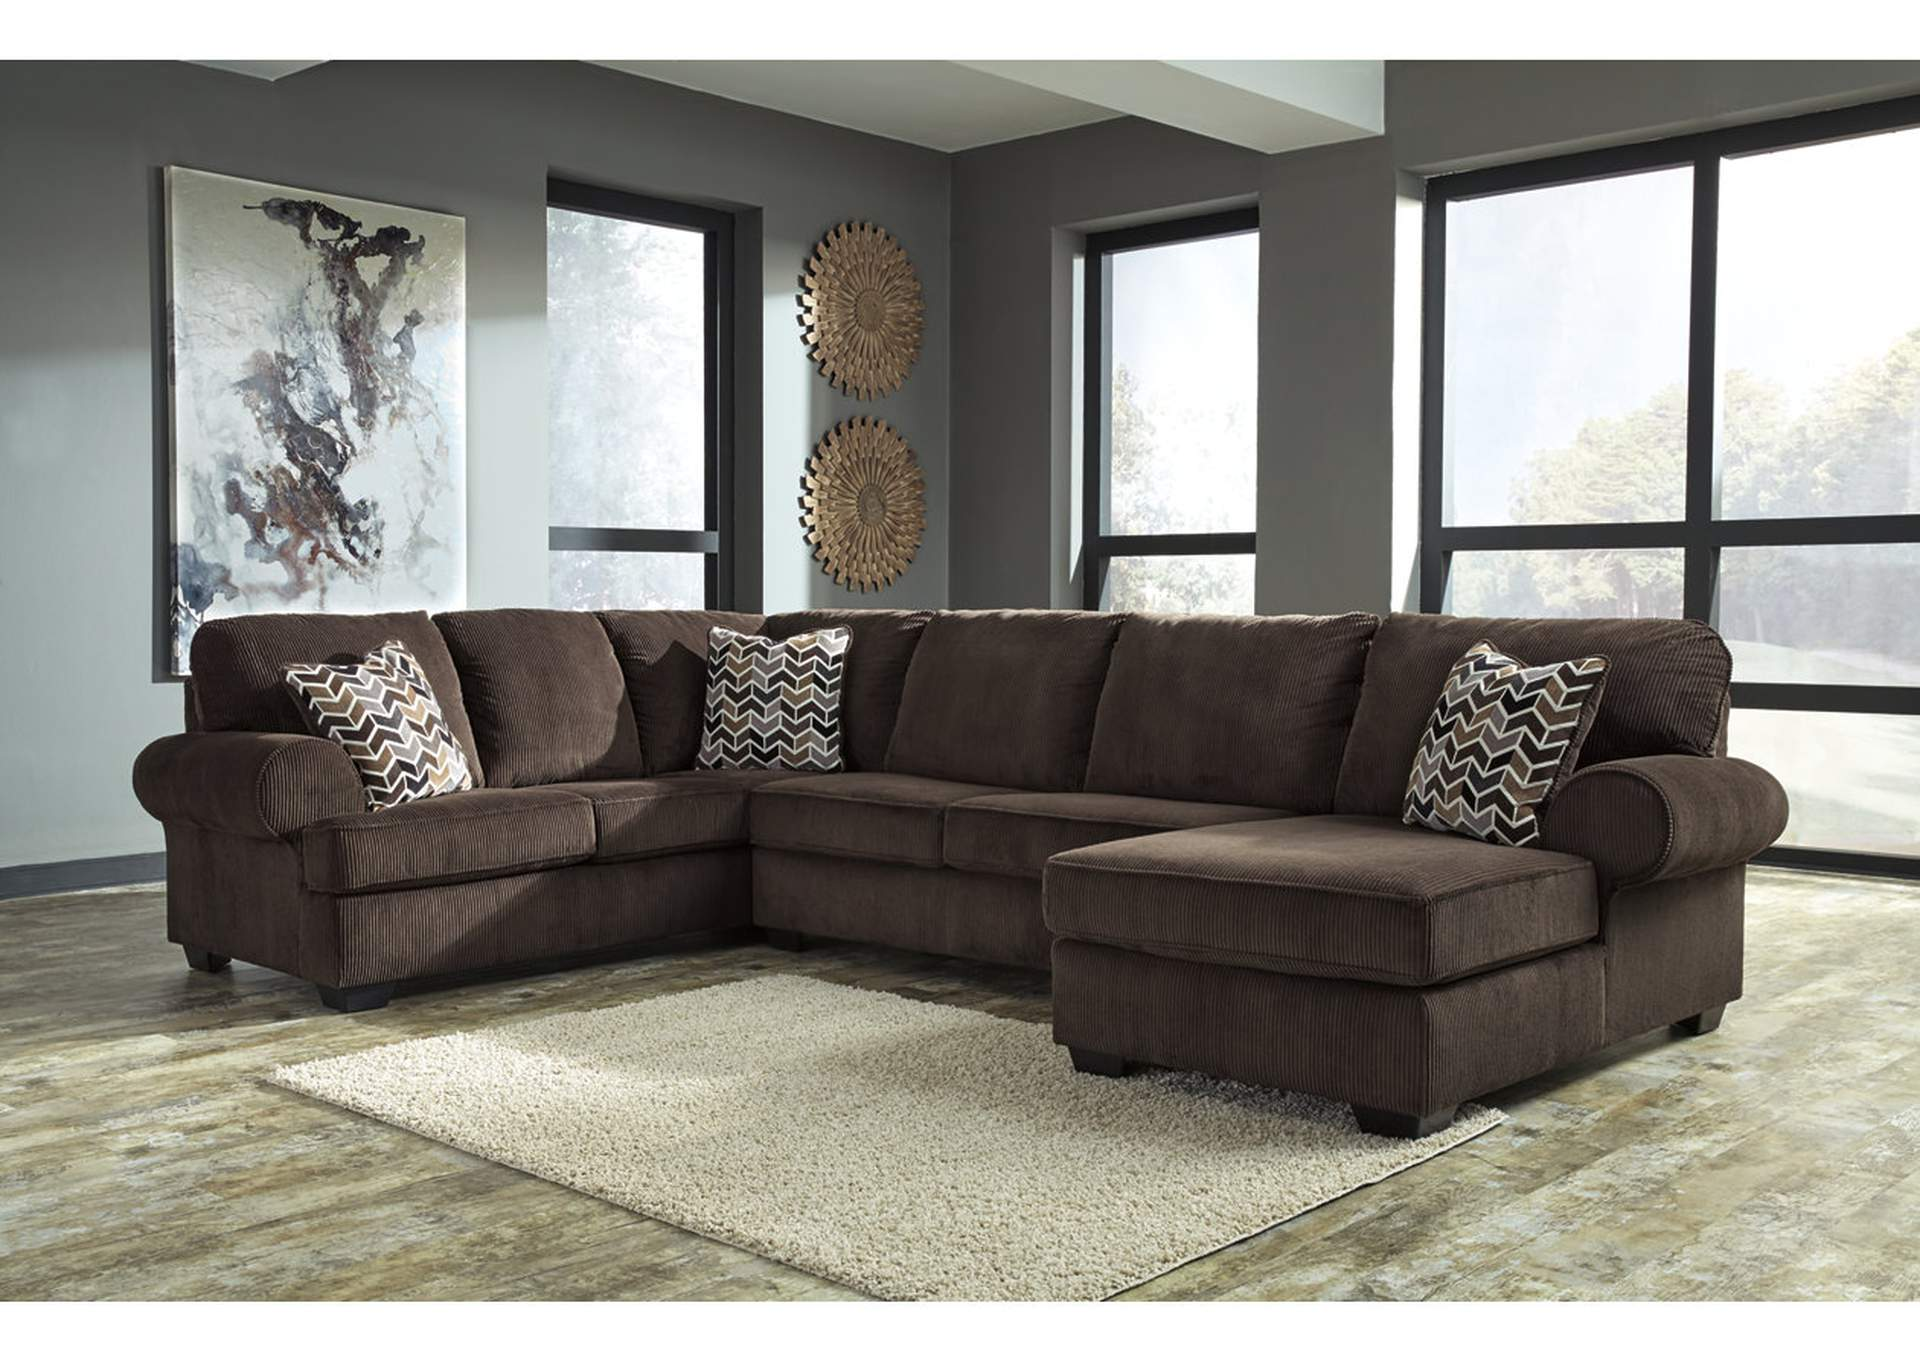 Jinllingsly Chocolate Left Facing Sectional,Signature Design By Ashley